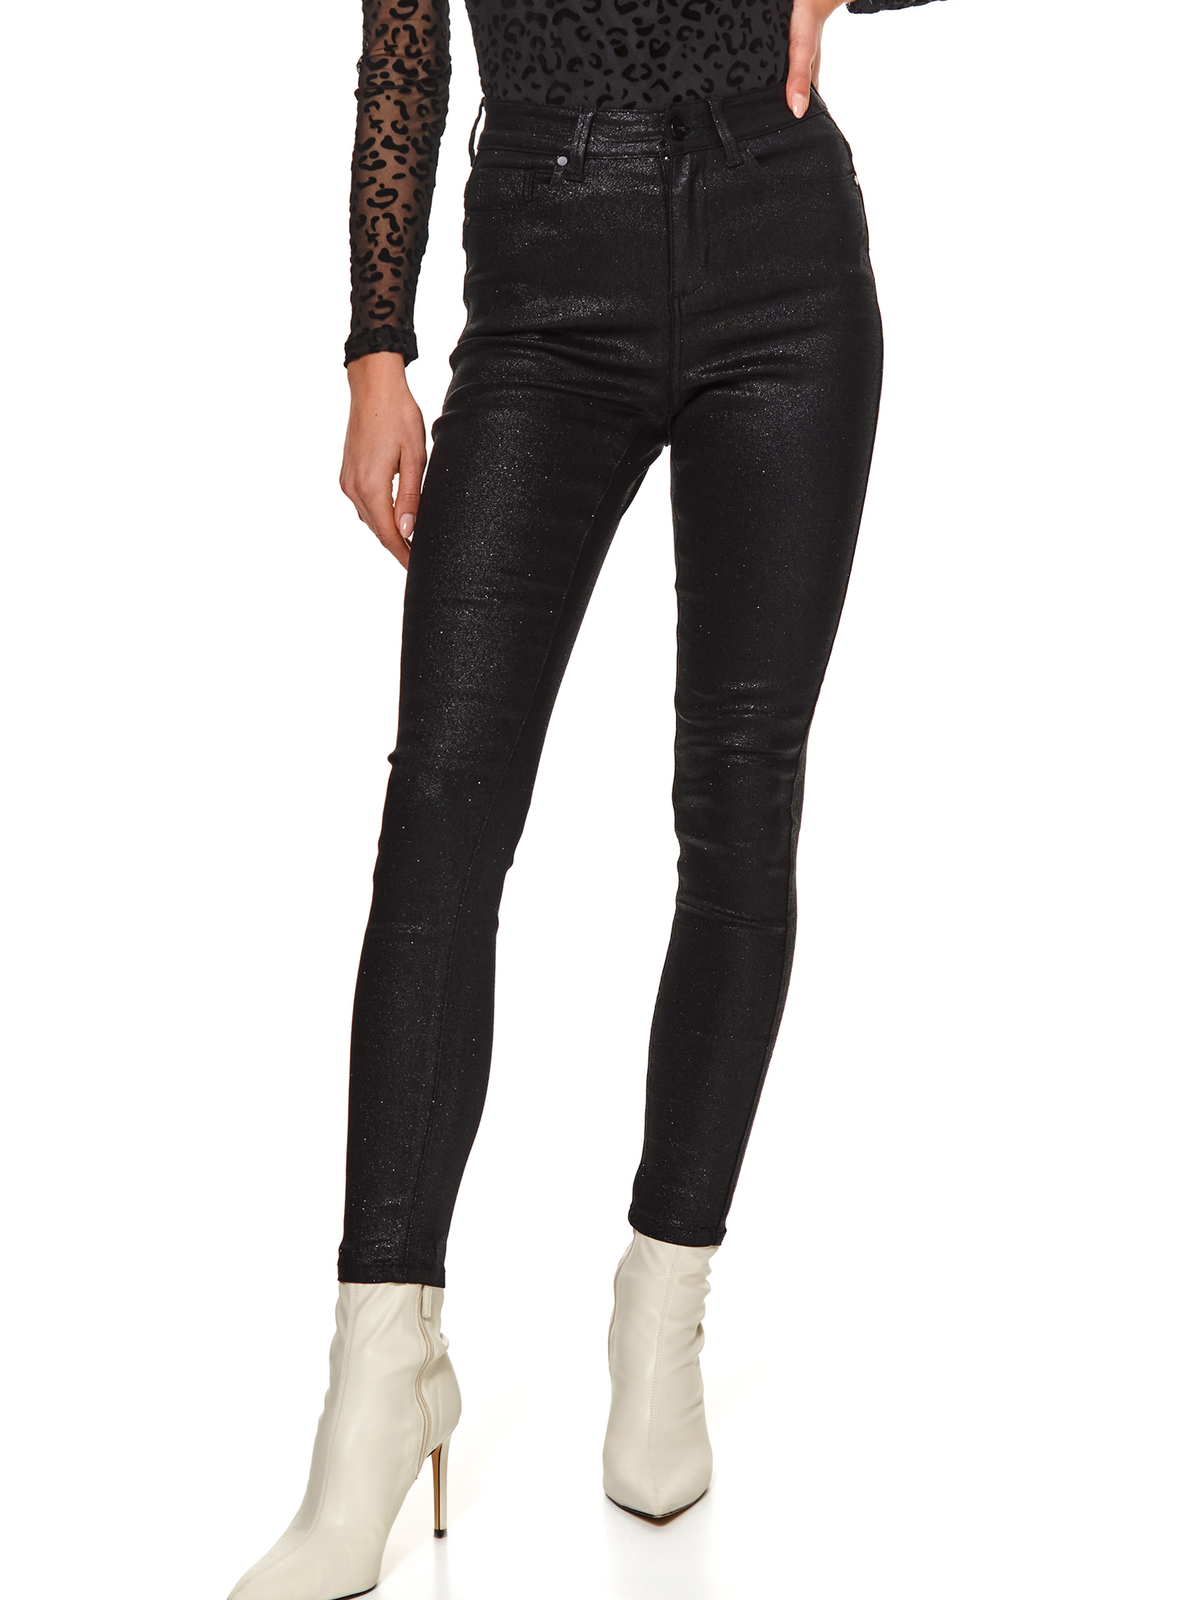 Black trousers casual long conical with pockets with glitter details